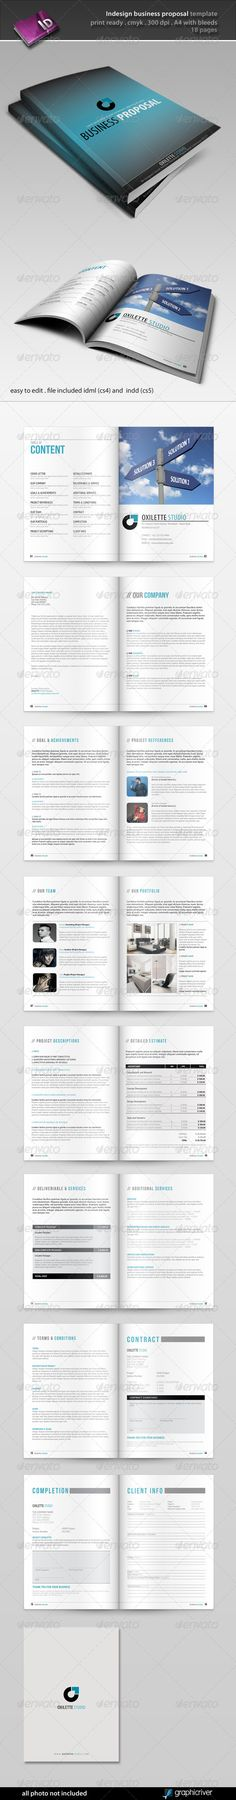 Project Proposal Template (Updated) Proposal templates, Project - proposal template microsoft word